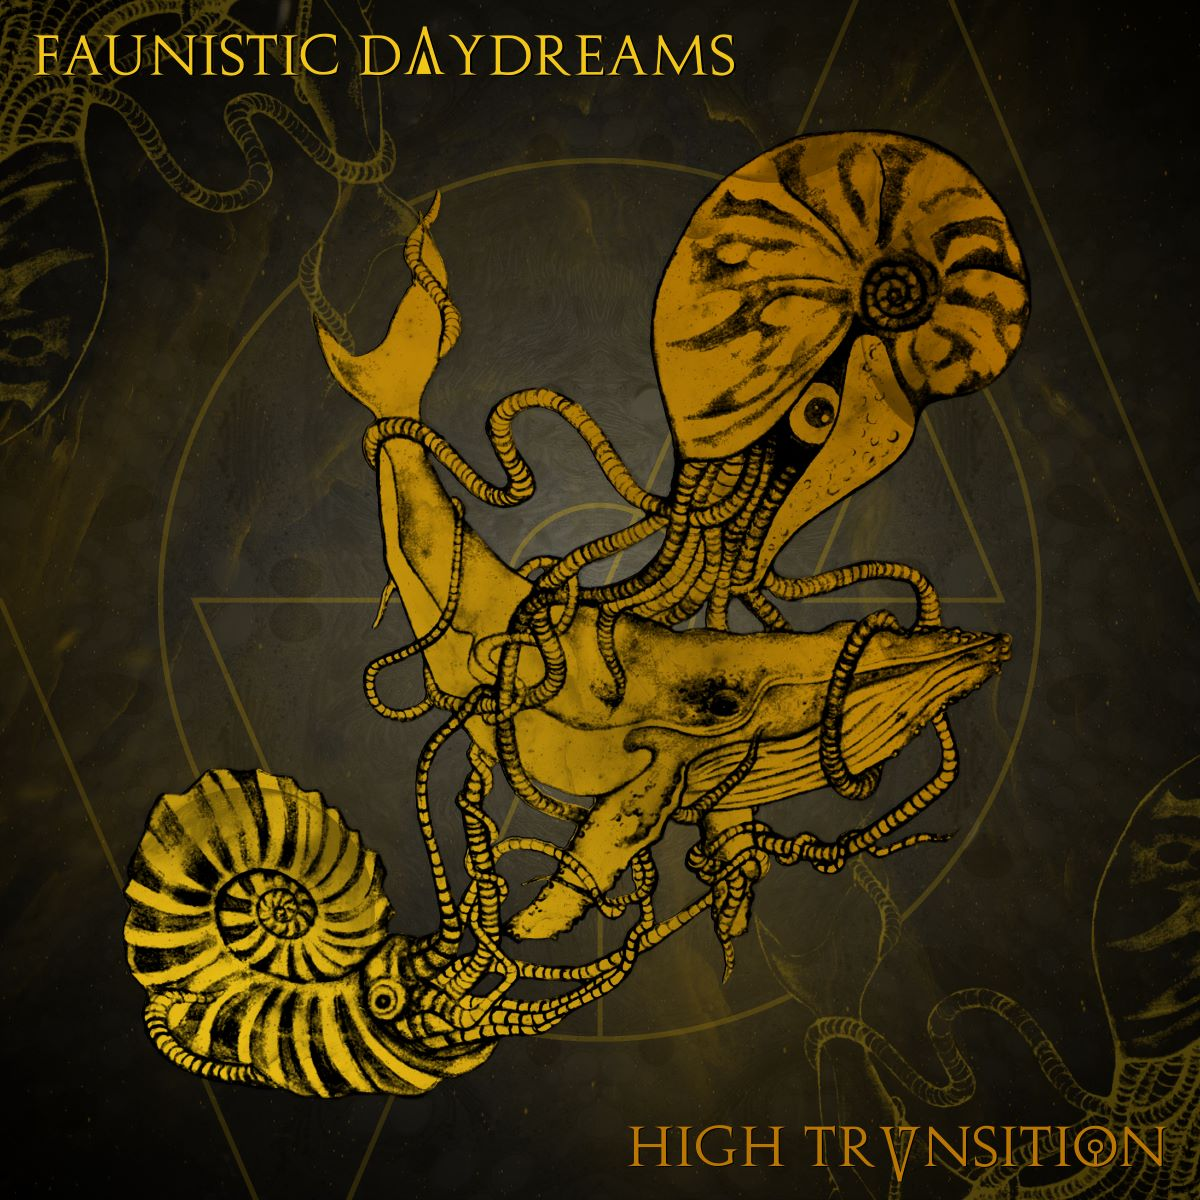 High Transition - Faunistic Daydreams - album cover